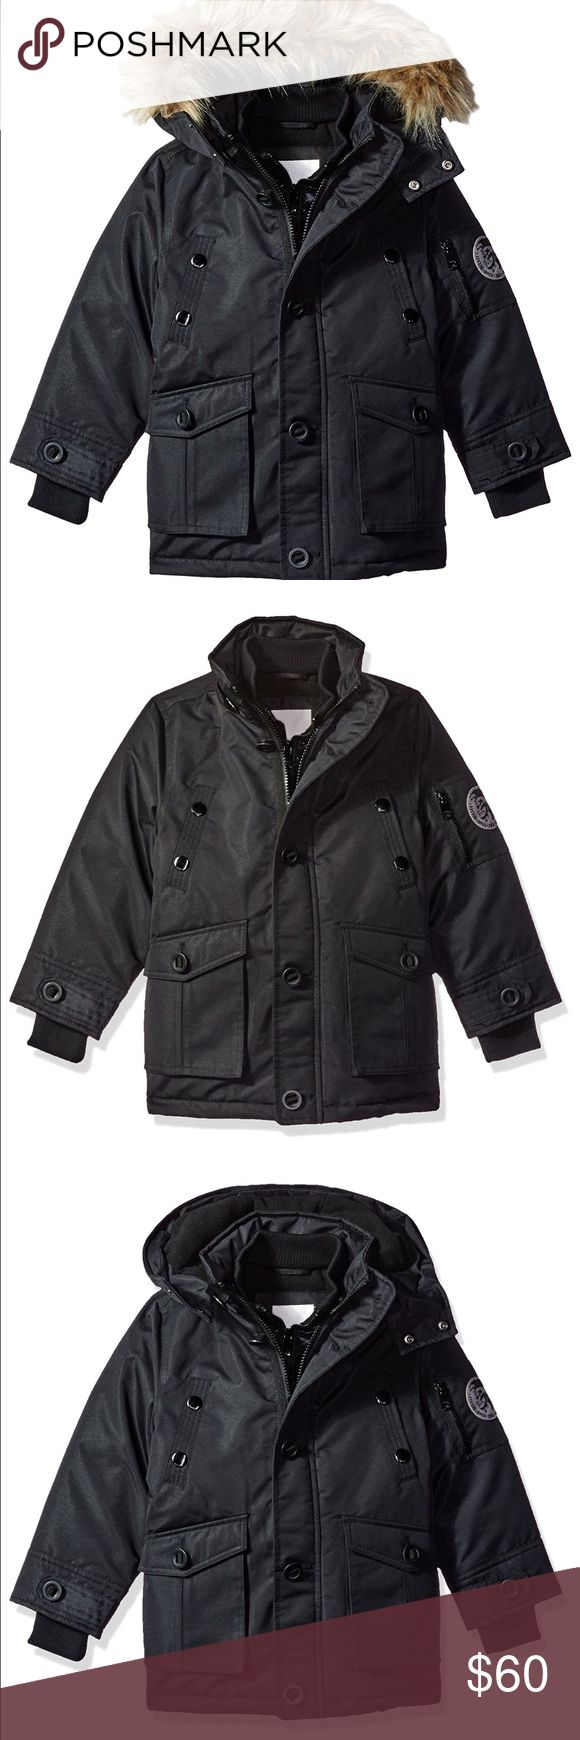 Diesel Boys' Heavy Weight Quilted Vested Jacket Fits my son perfectly who is 3 yrs old 39ibs and 40 inches  Features 100% Polyester Imported Machine Wash Attached hood with removable faux fur trim Wind and rain resistant Fully lined Storm flap placket covers zipper for warmth Mock neck inner warm vestee Diesel Jackets & Coats